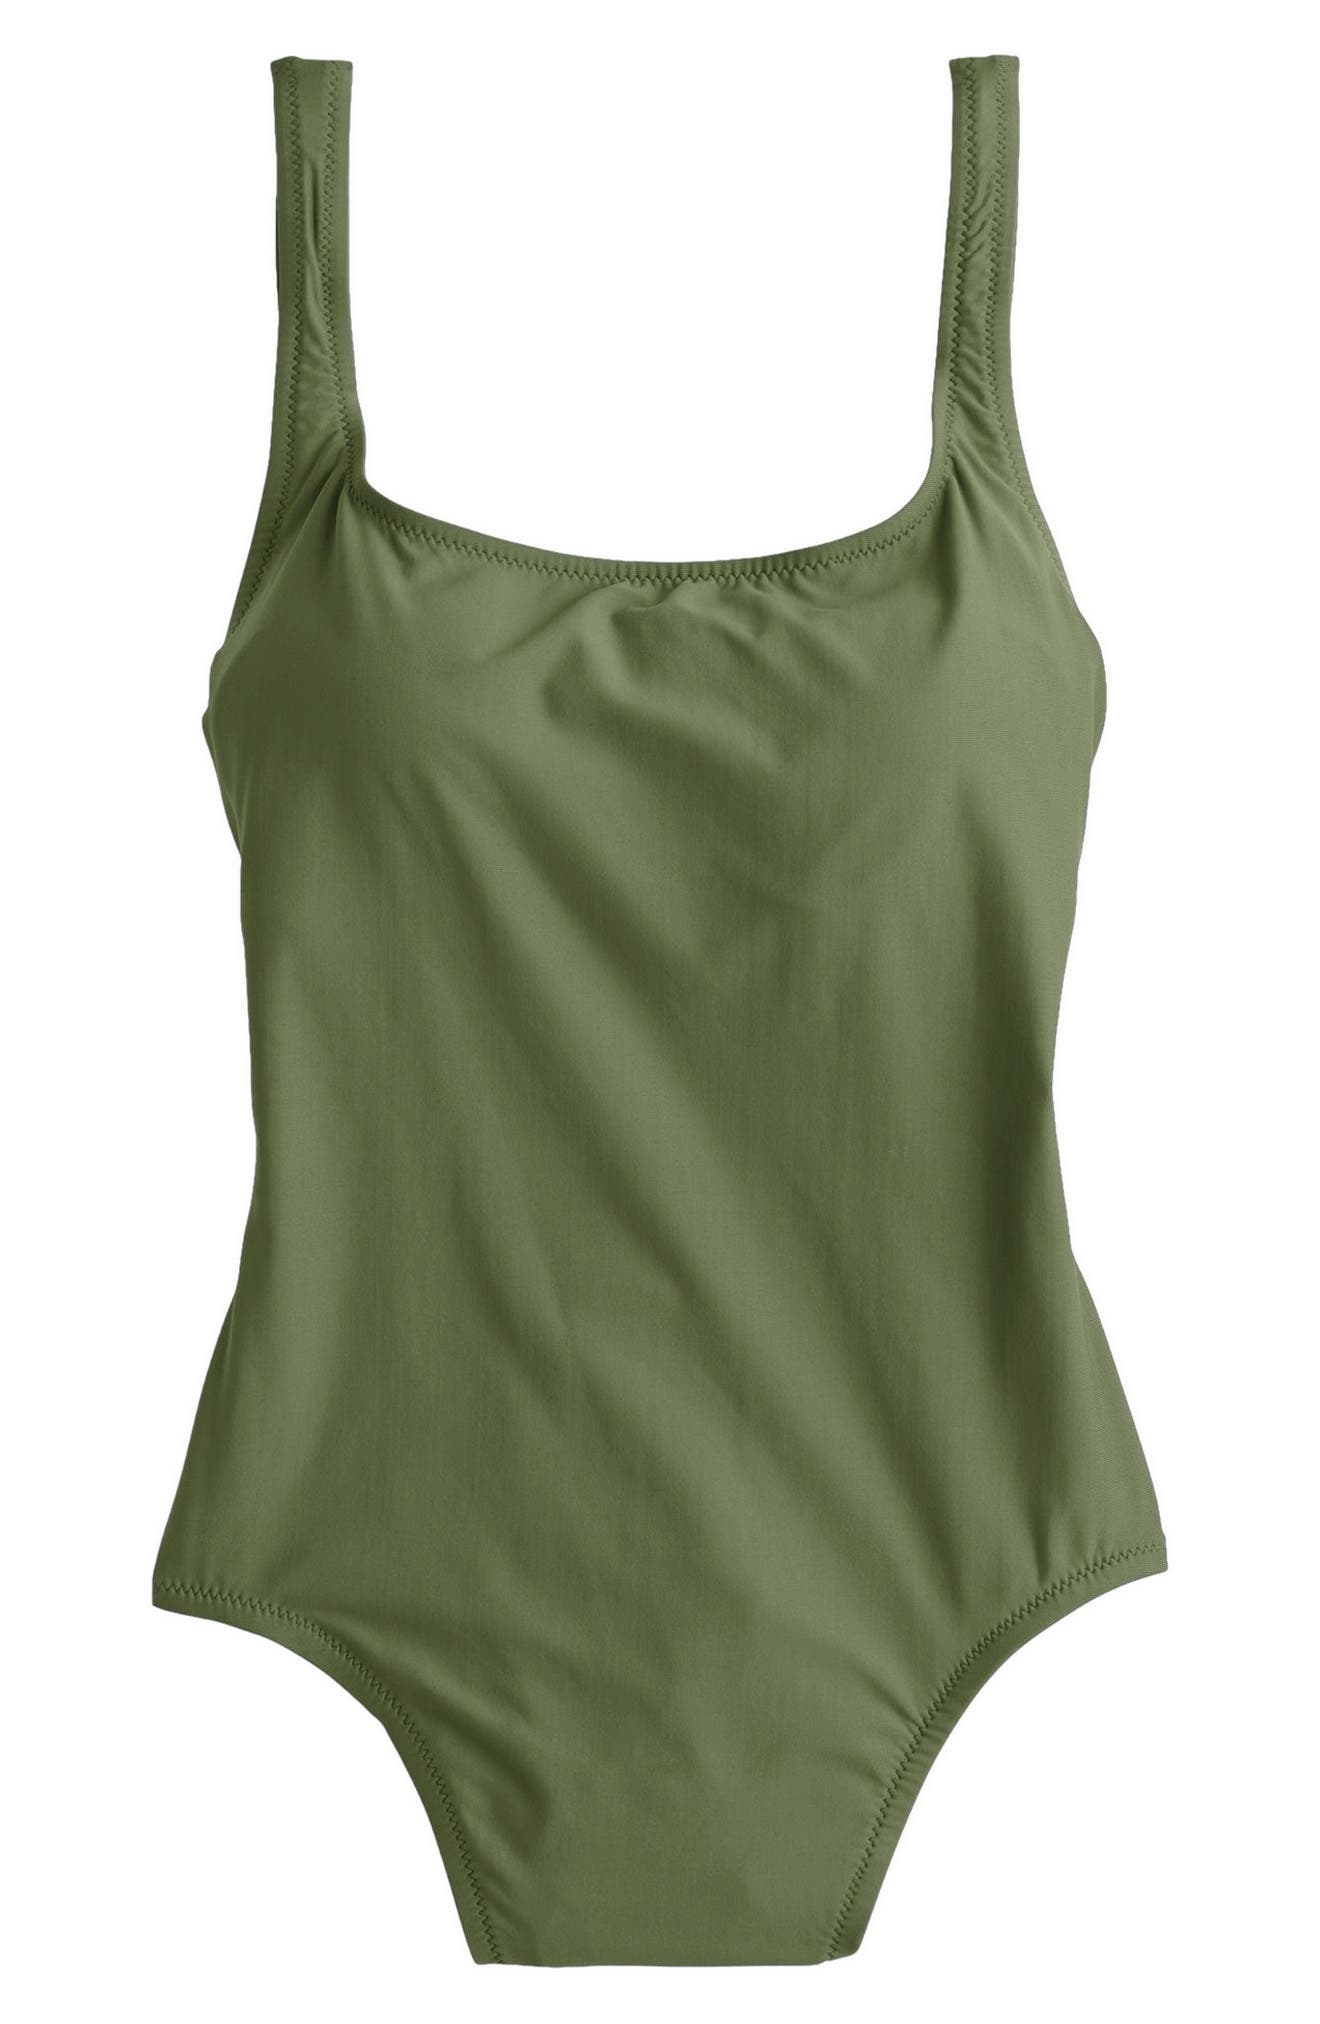 Tactel<sup>®</sup> Nylon One-Piece Swimsuit,                         Main,                         color, Safari